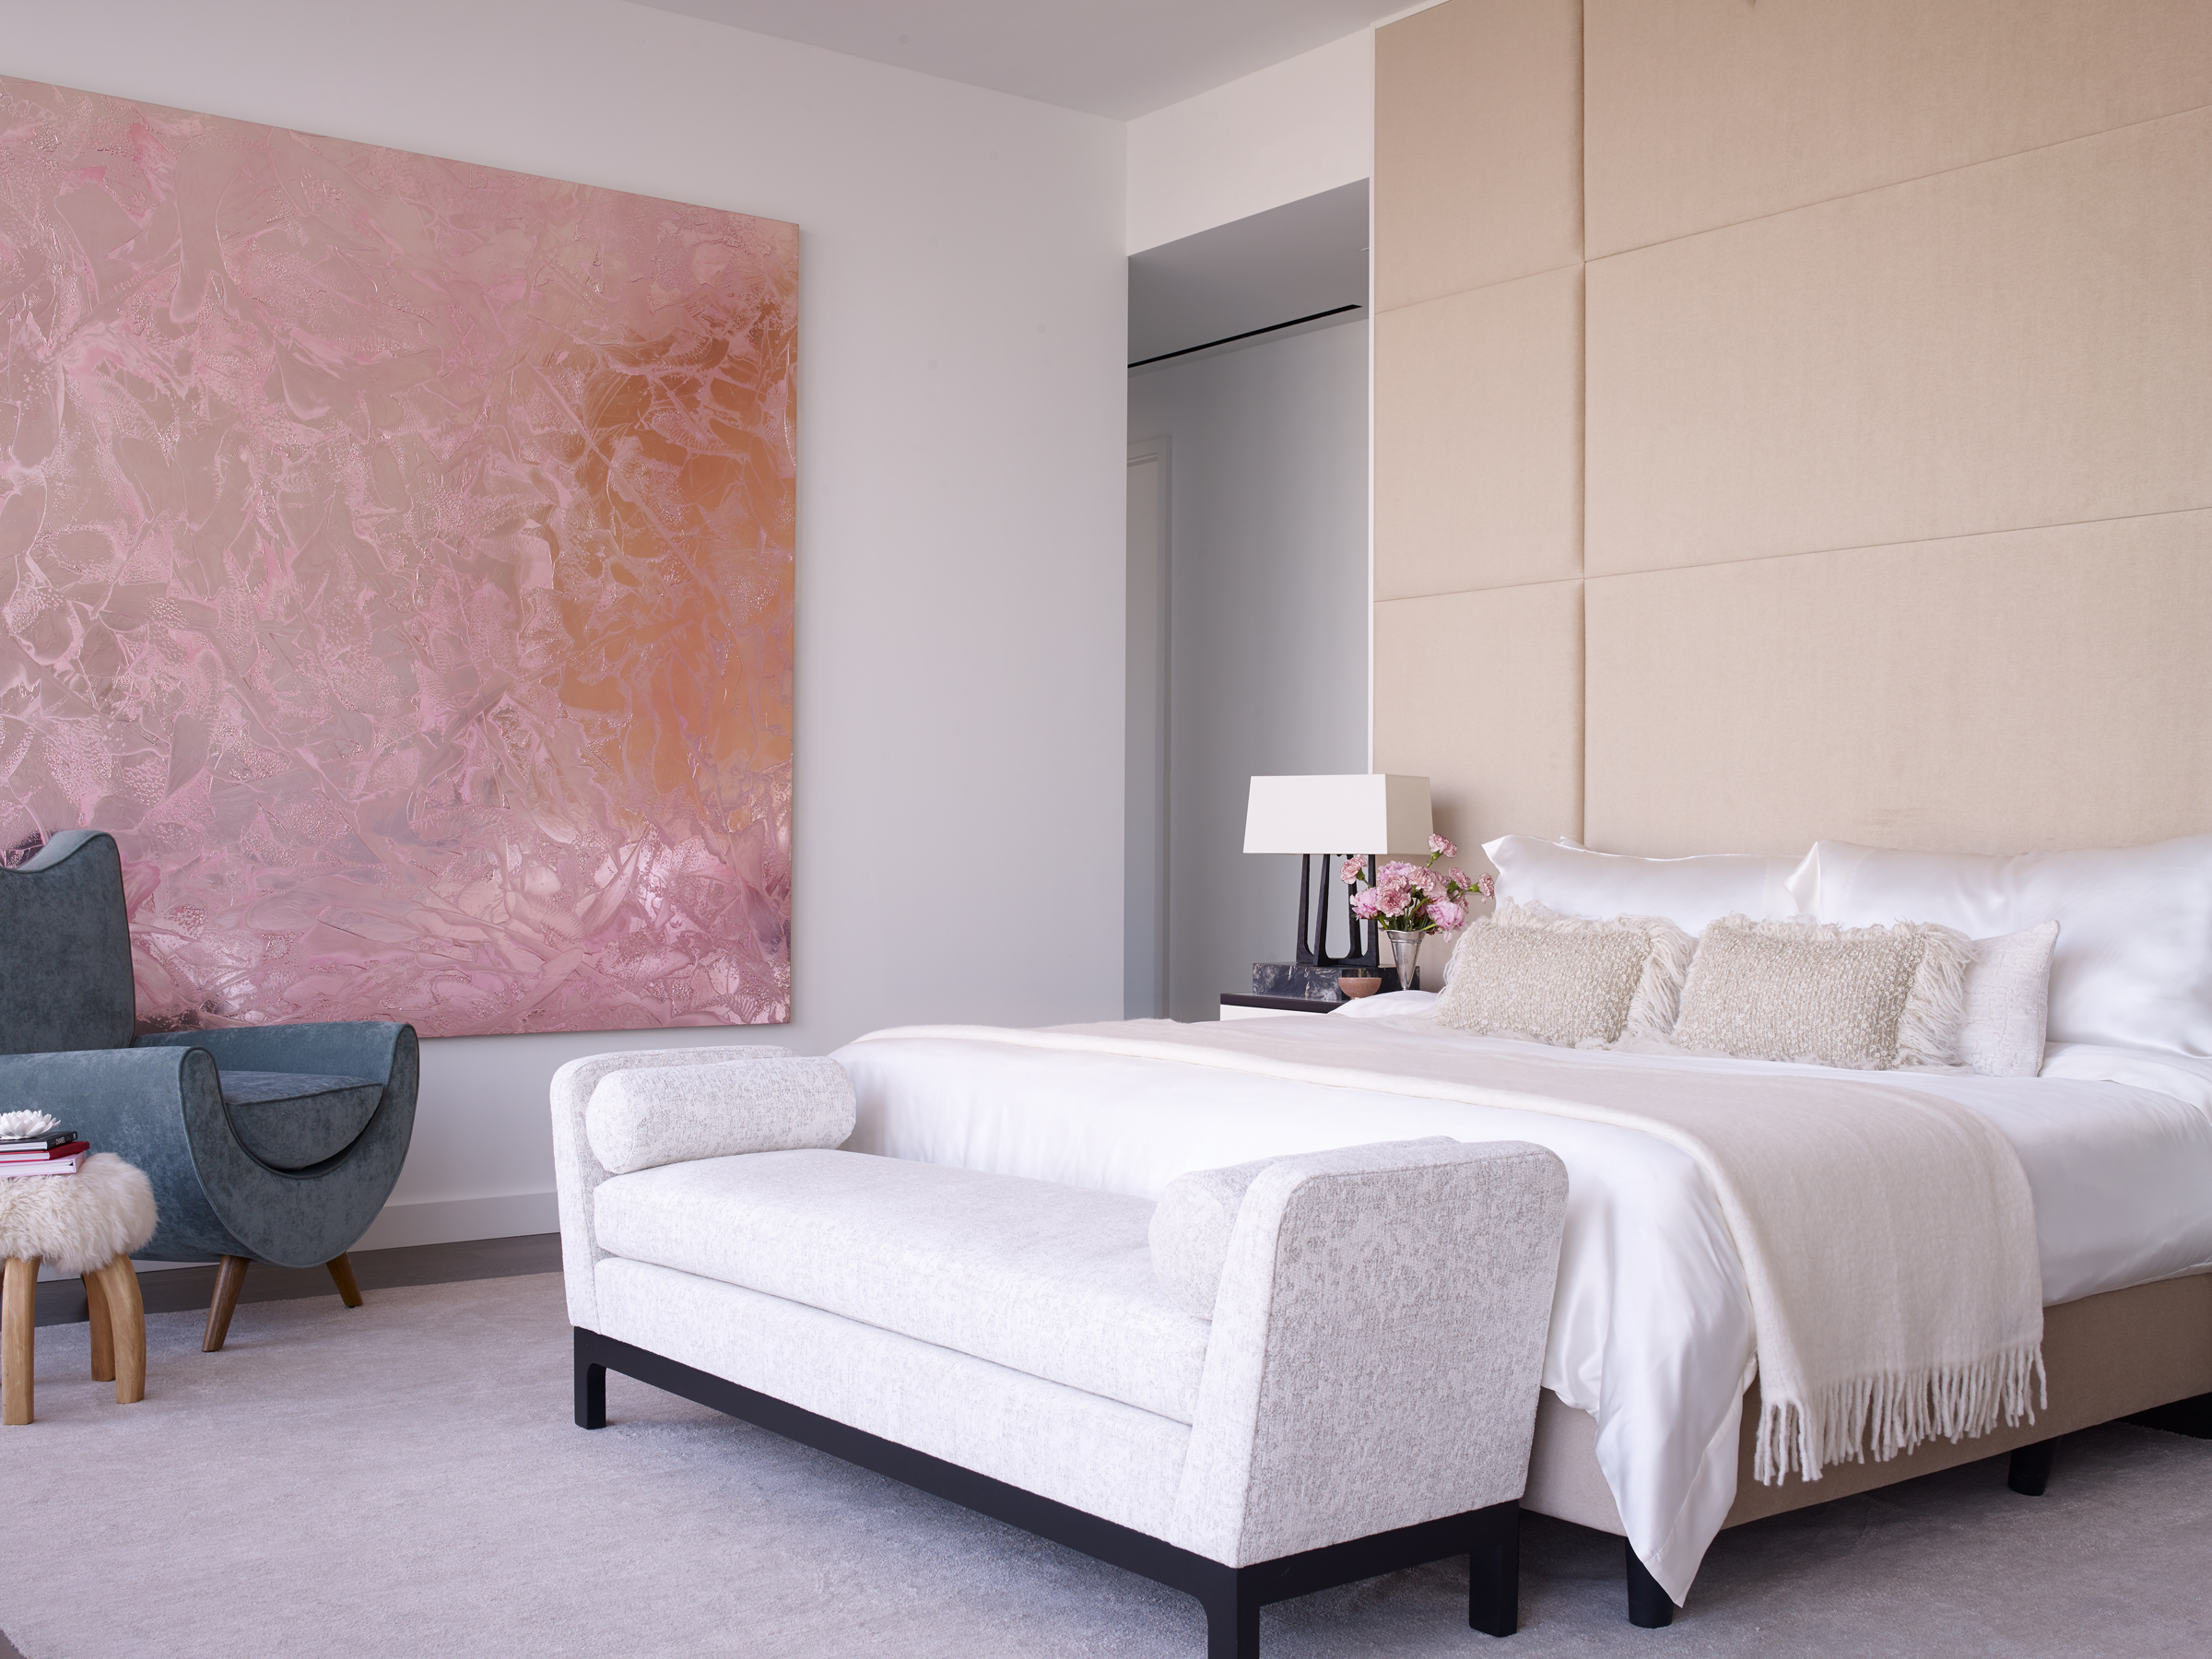 Different shades of pink define this spacious bedroom